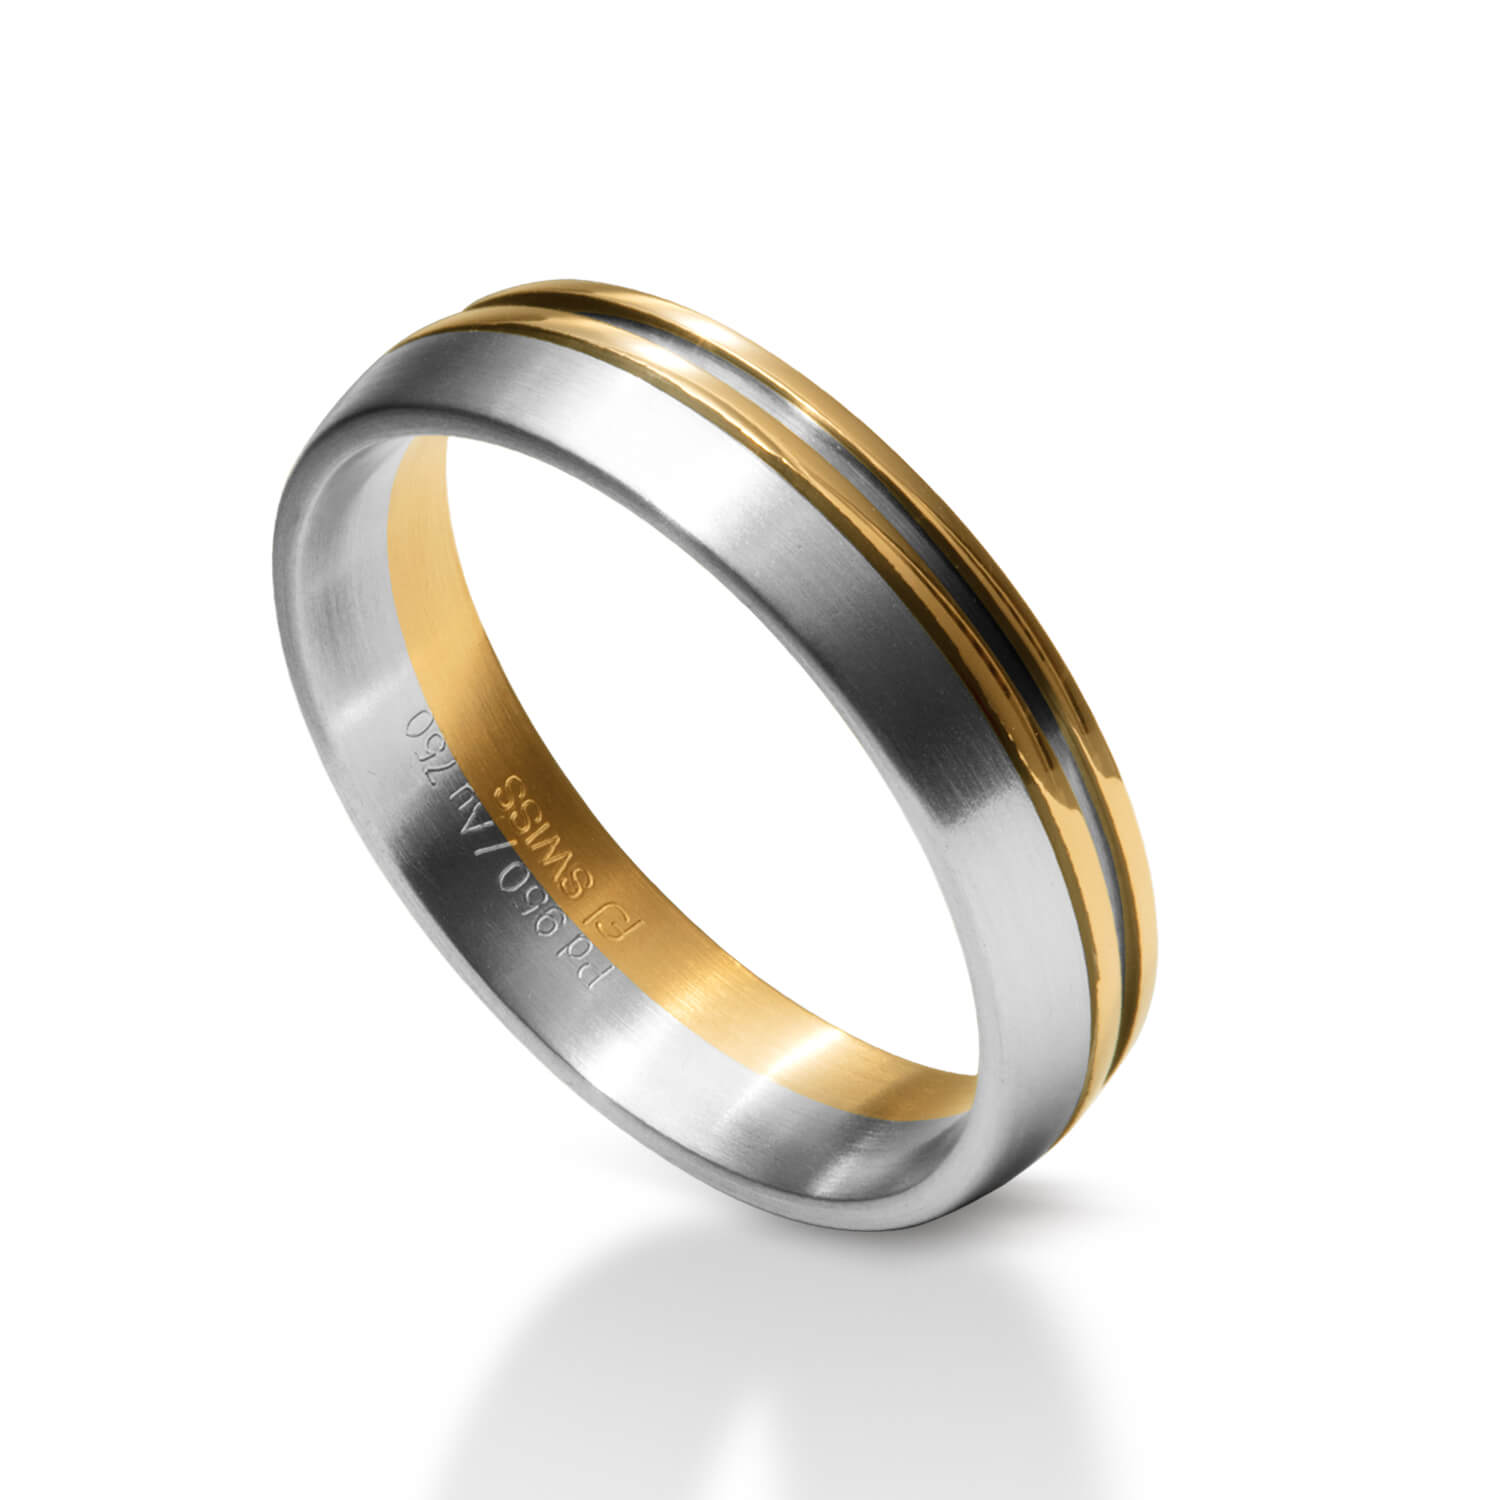 wedding rings, wedding bands, rings, jewellery, jewelry, gold, platinum, carbon